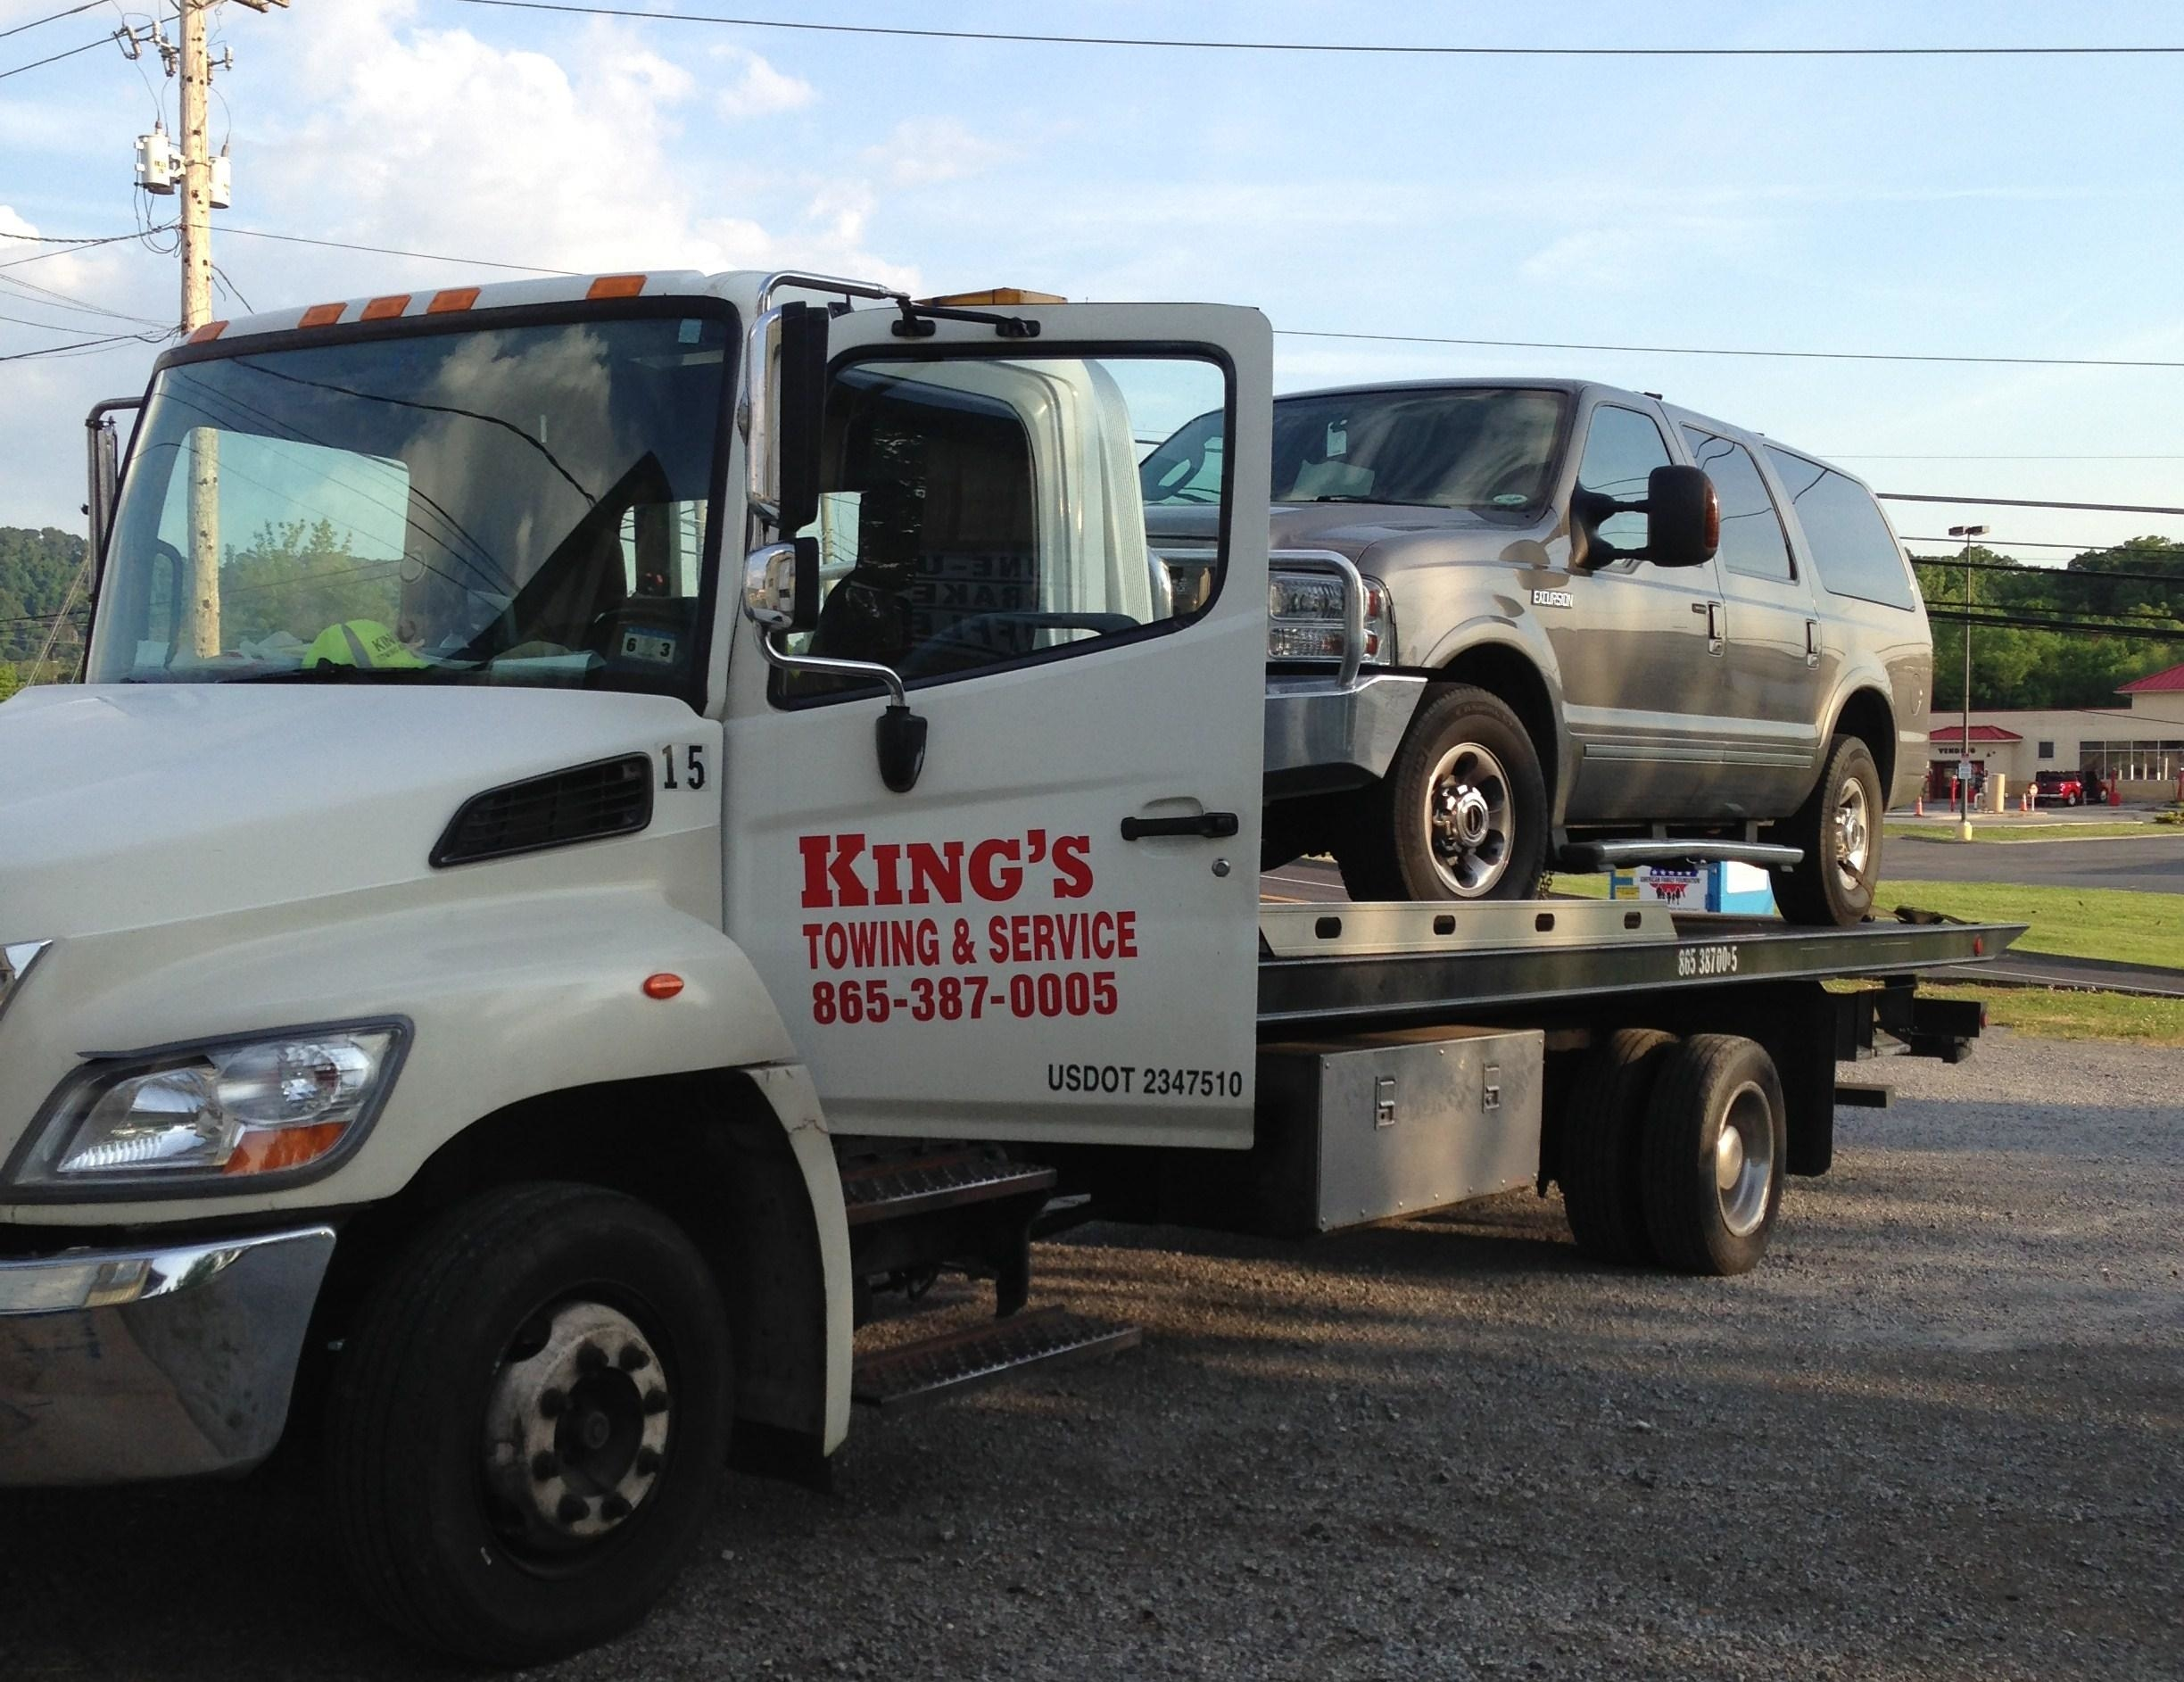 Kings Towing and Service - Knoxville, TN -